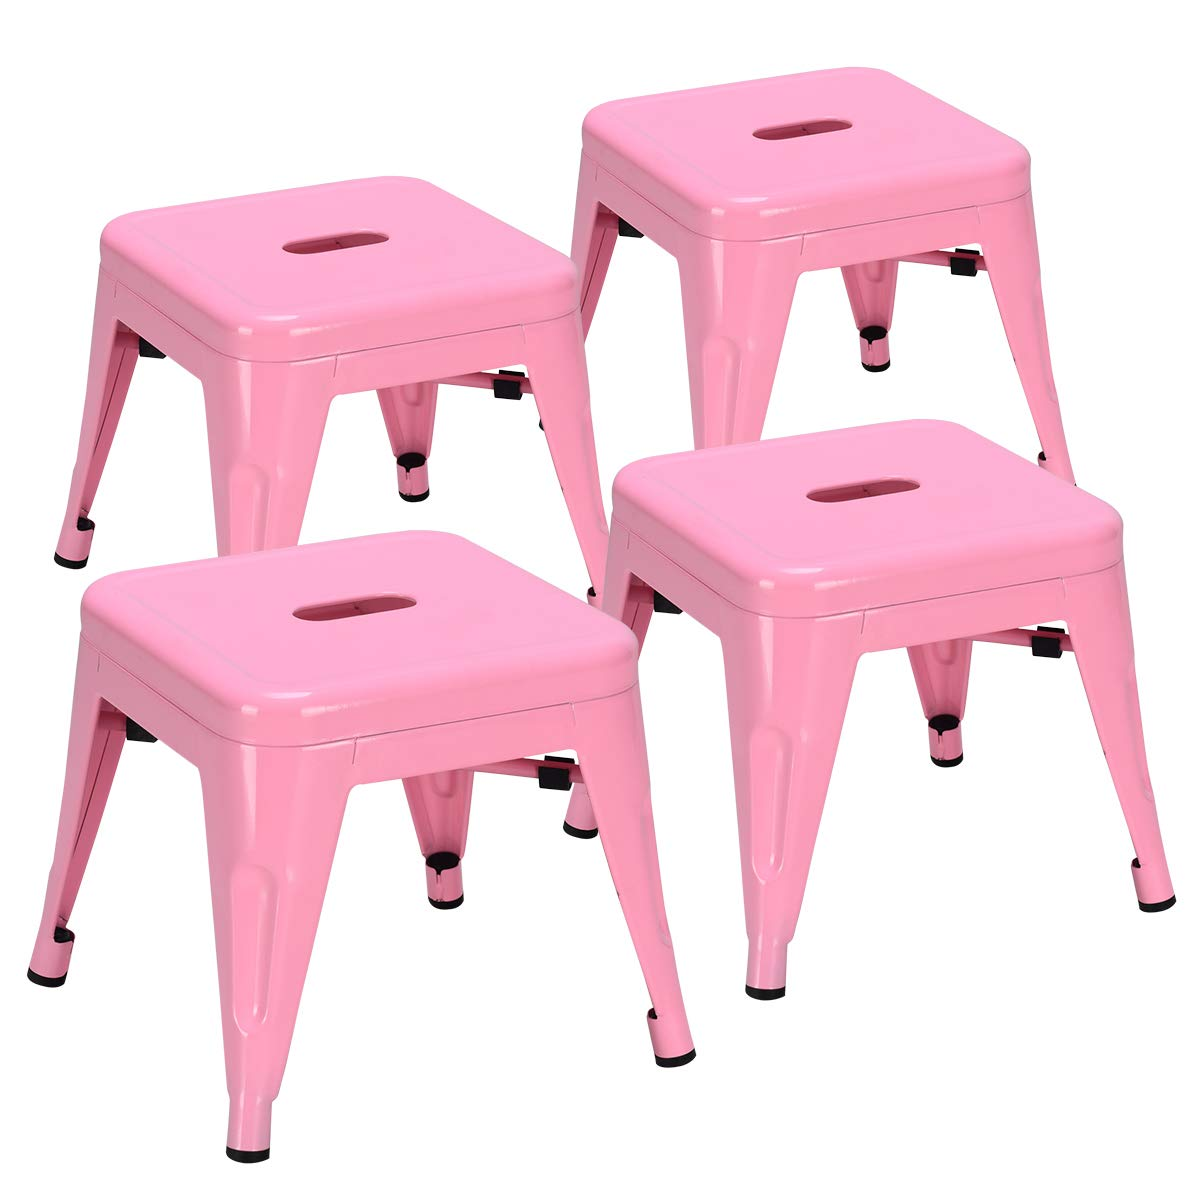 COSTWAY Kids Metal Stools Steel Barstools Vintage Antique Style Counter Bar Stool (Pink, Set of 4) by COSTWAY